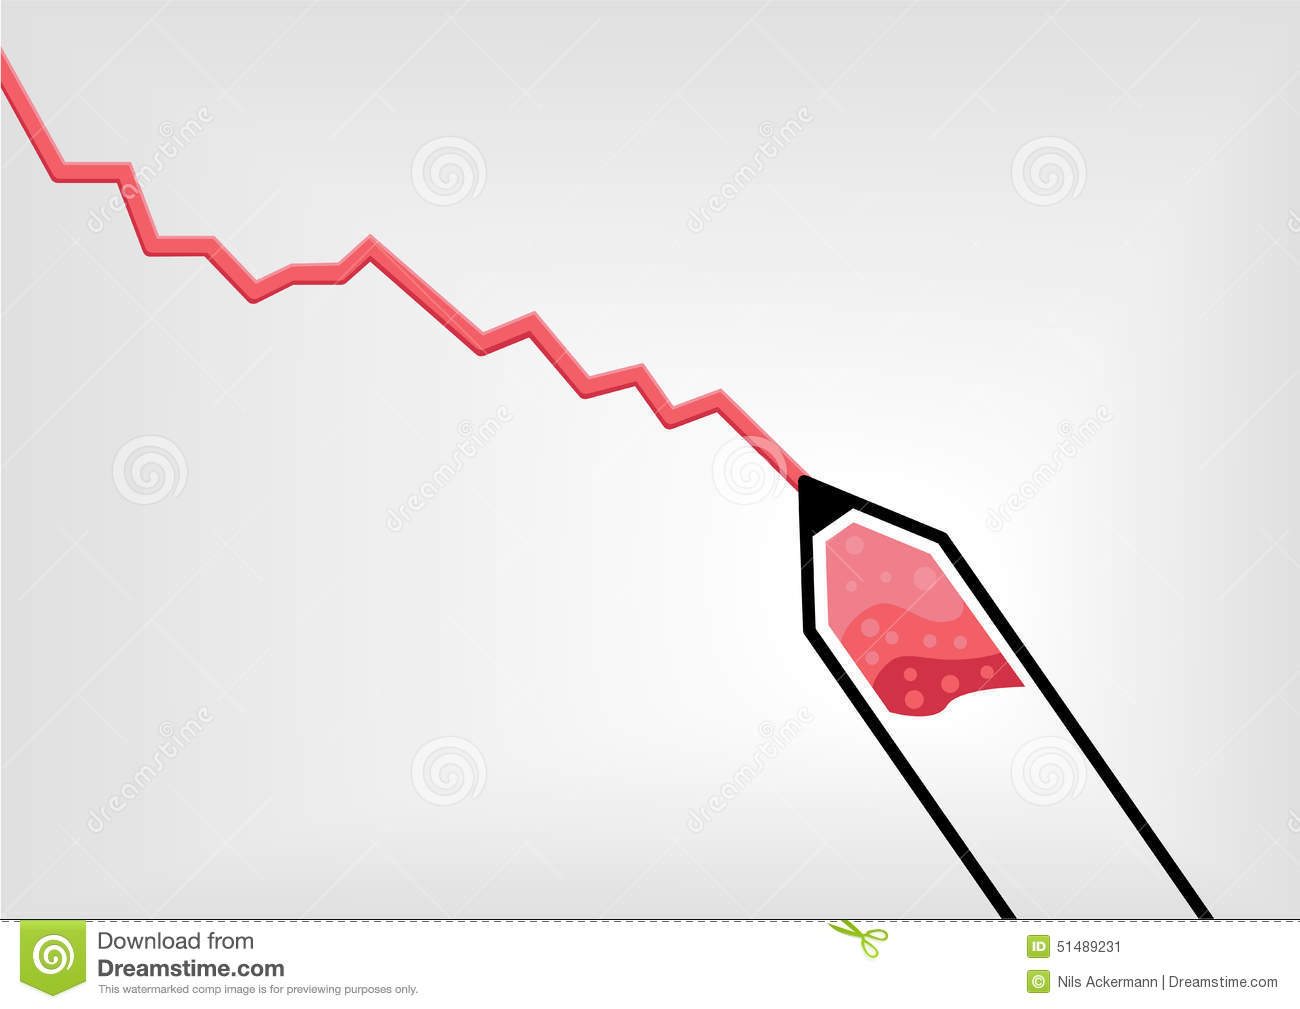 Vector illustration of red pen or pencil drawing a declining vector illustration of red pen or pencil drawing a declining negative growth curve nvjuhfo Choice Image